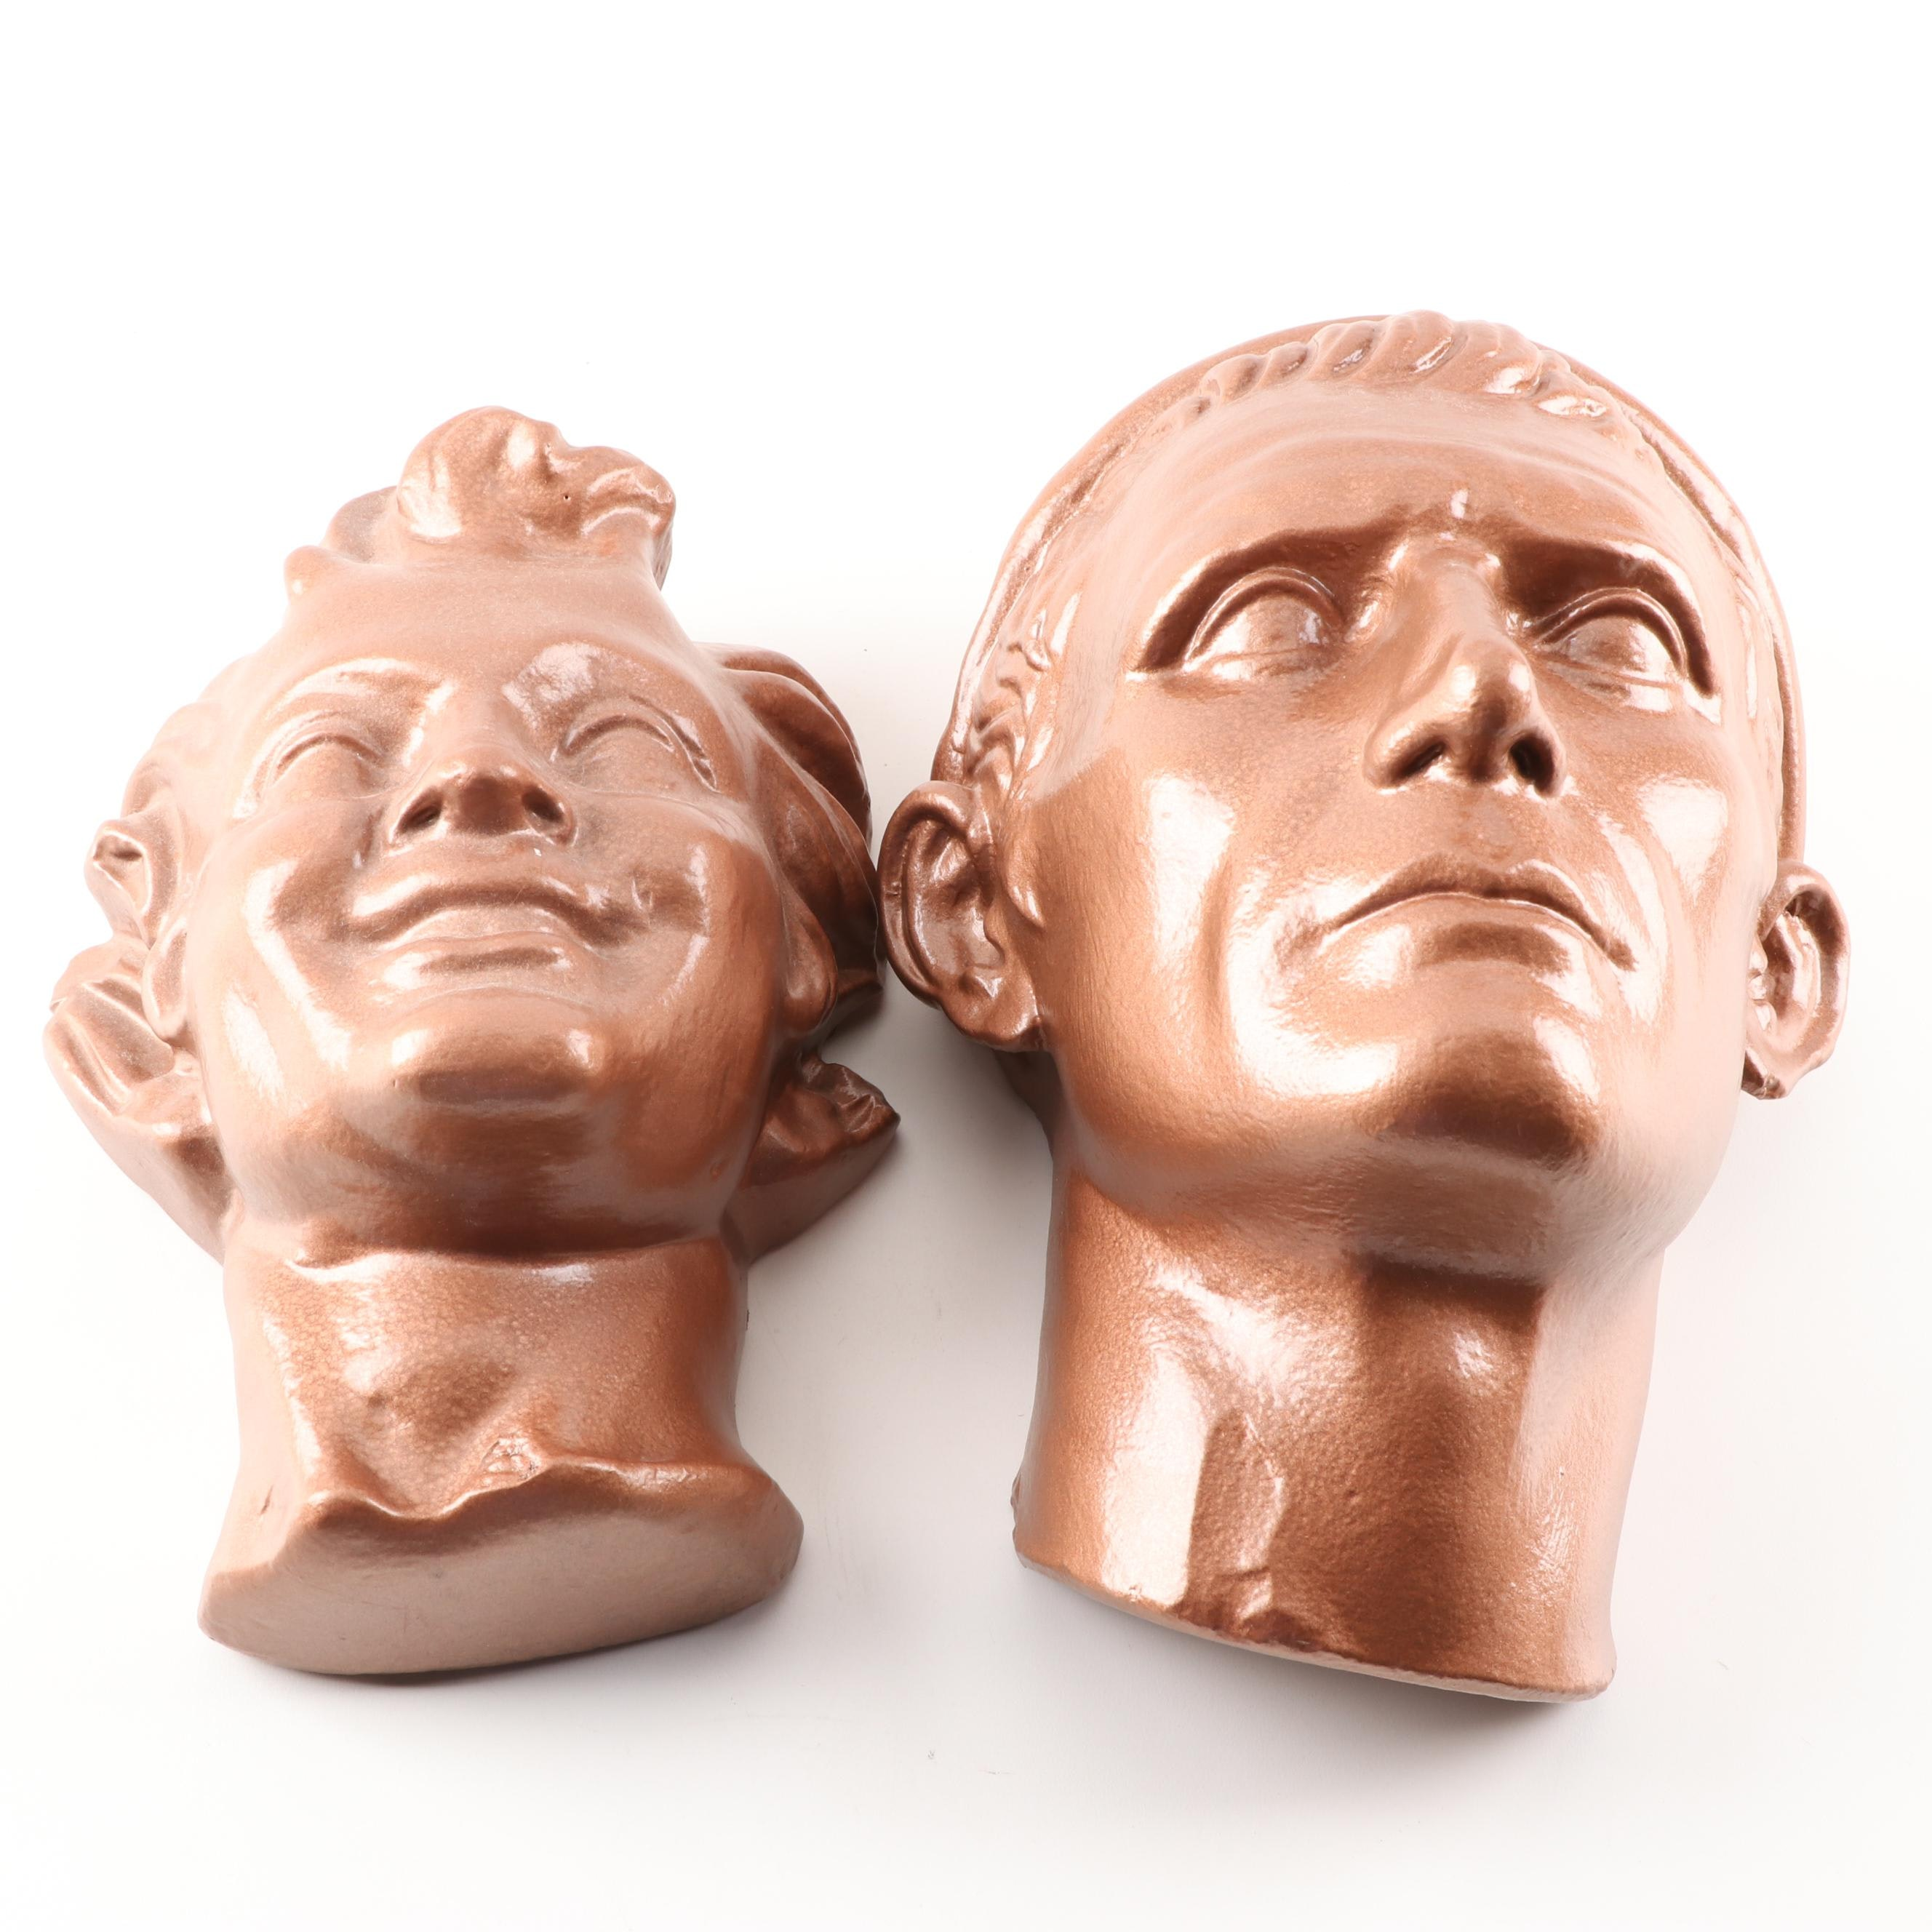 Copper Tone Plaster Wall Busts